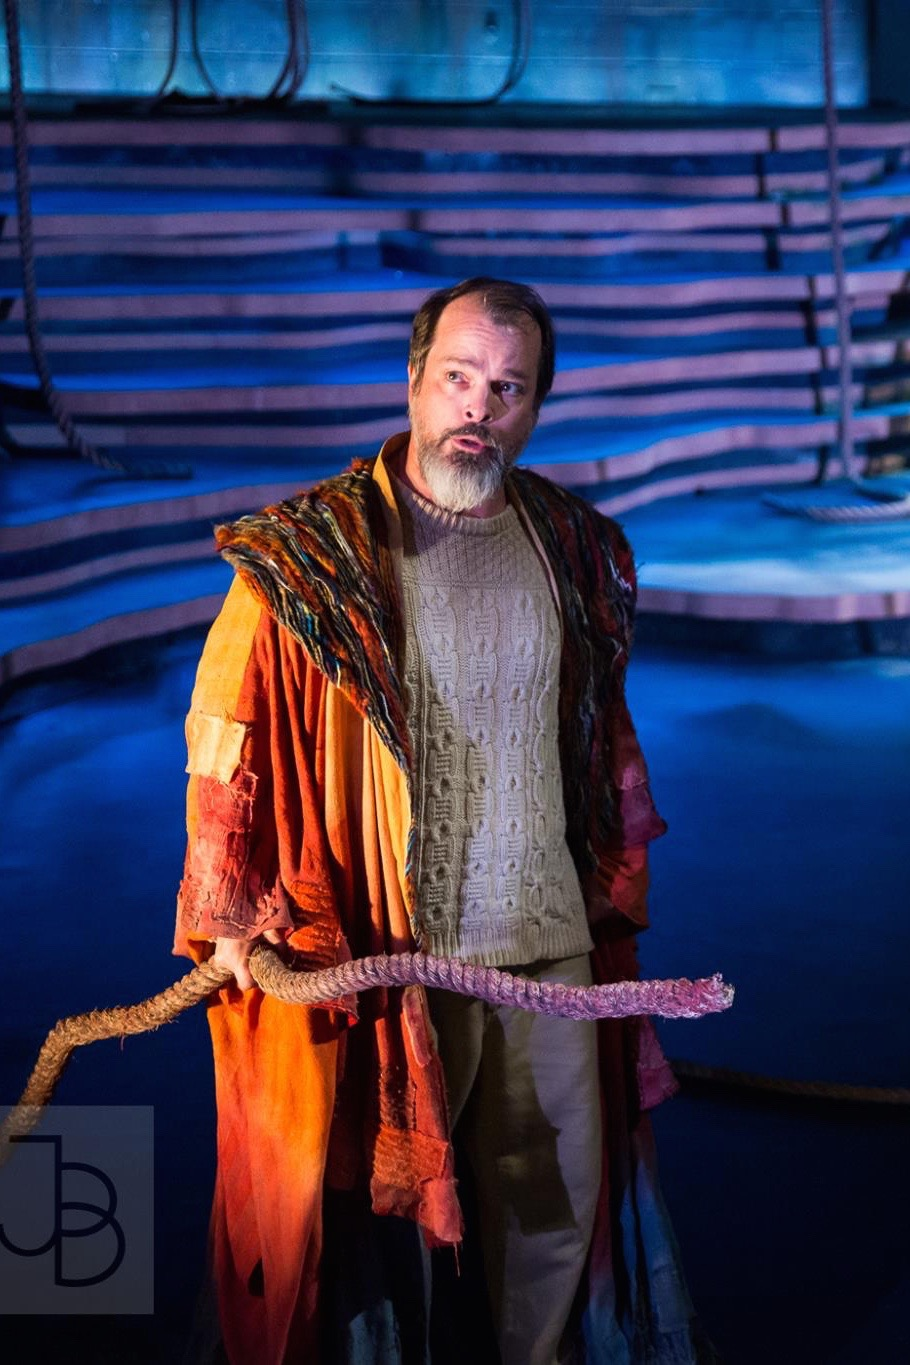 Prospero Played by David Catlin